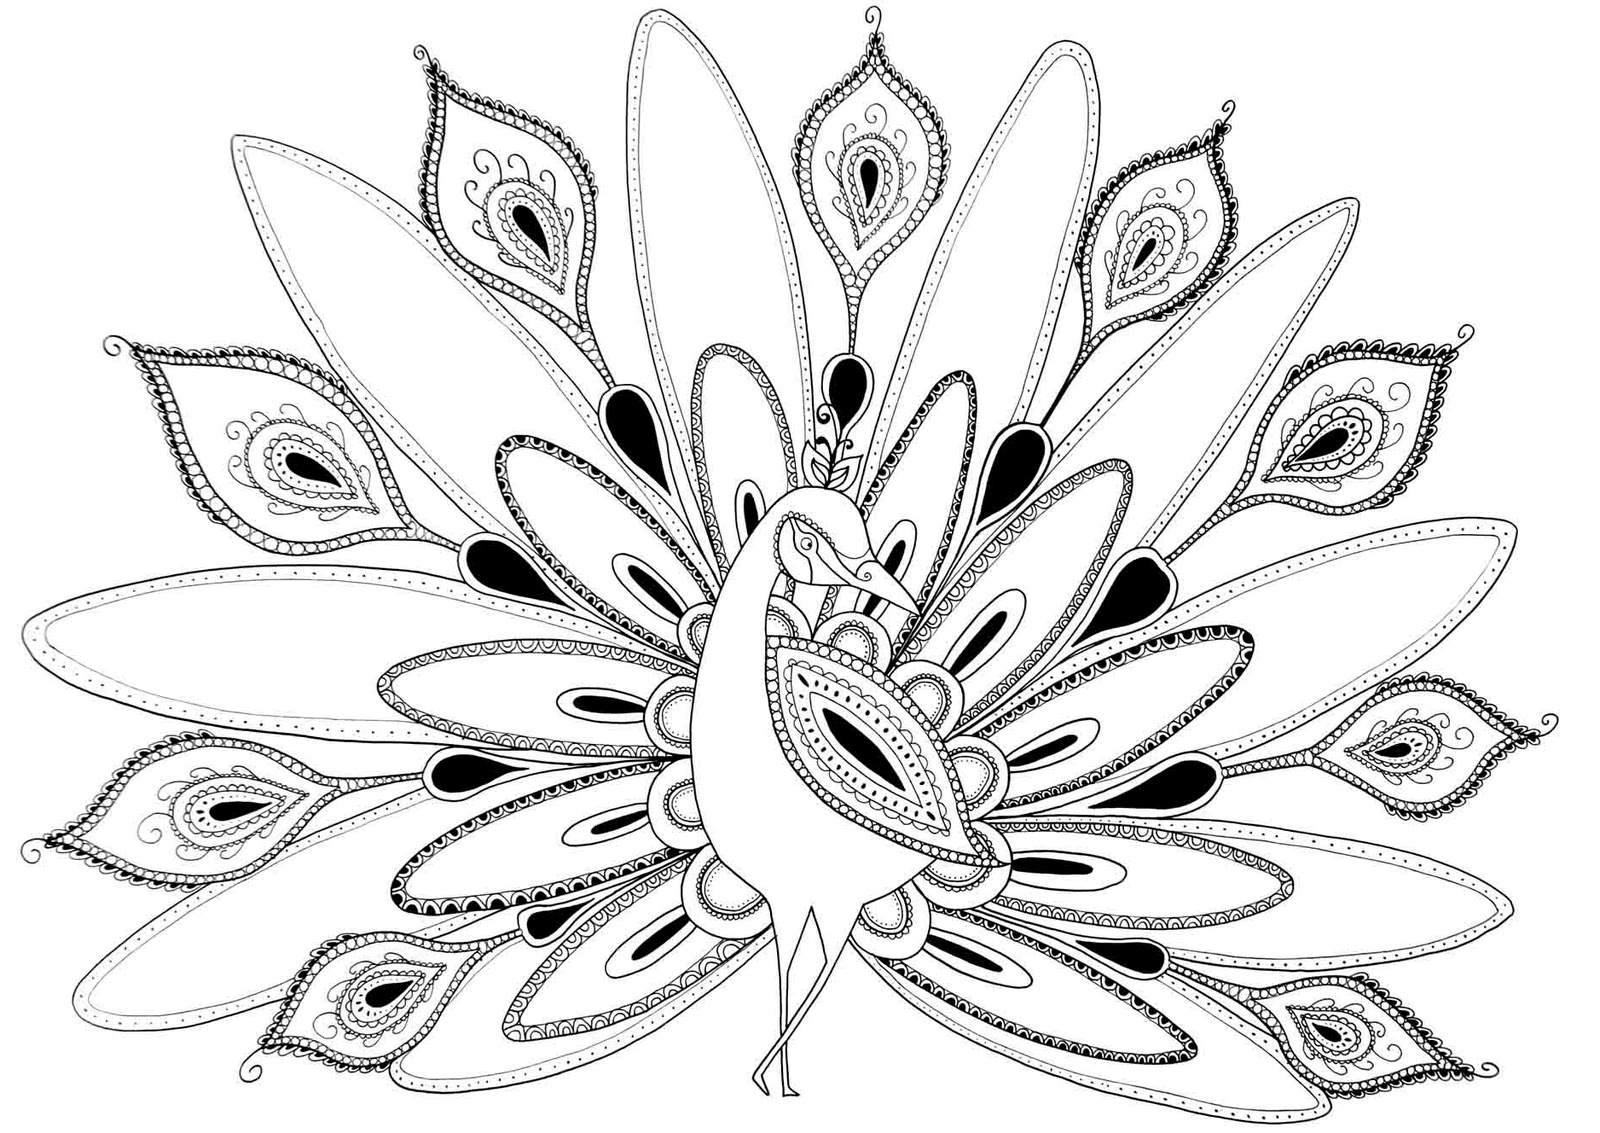 peacock pictures to color peacock in flowers coloring page free printable coloring pictures color peacock to